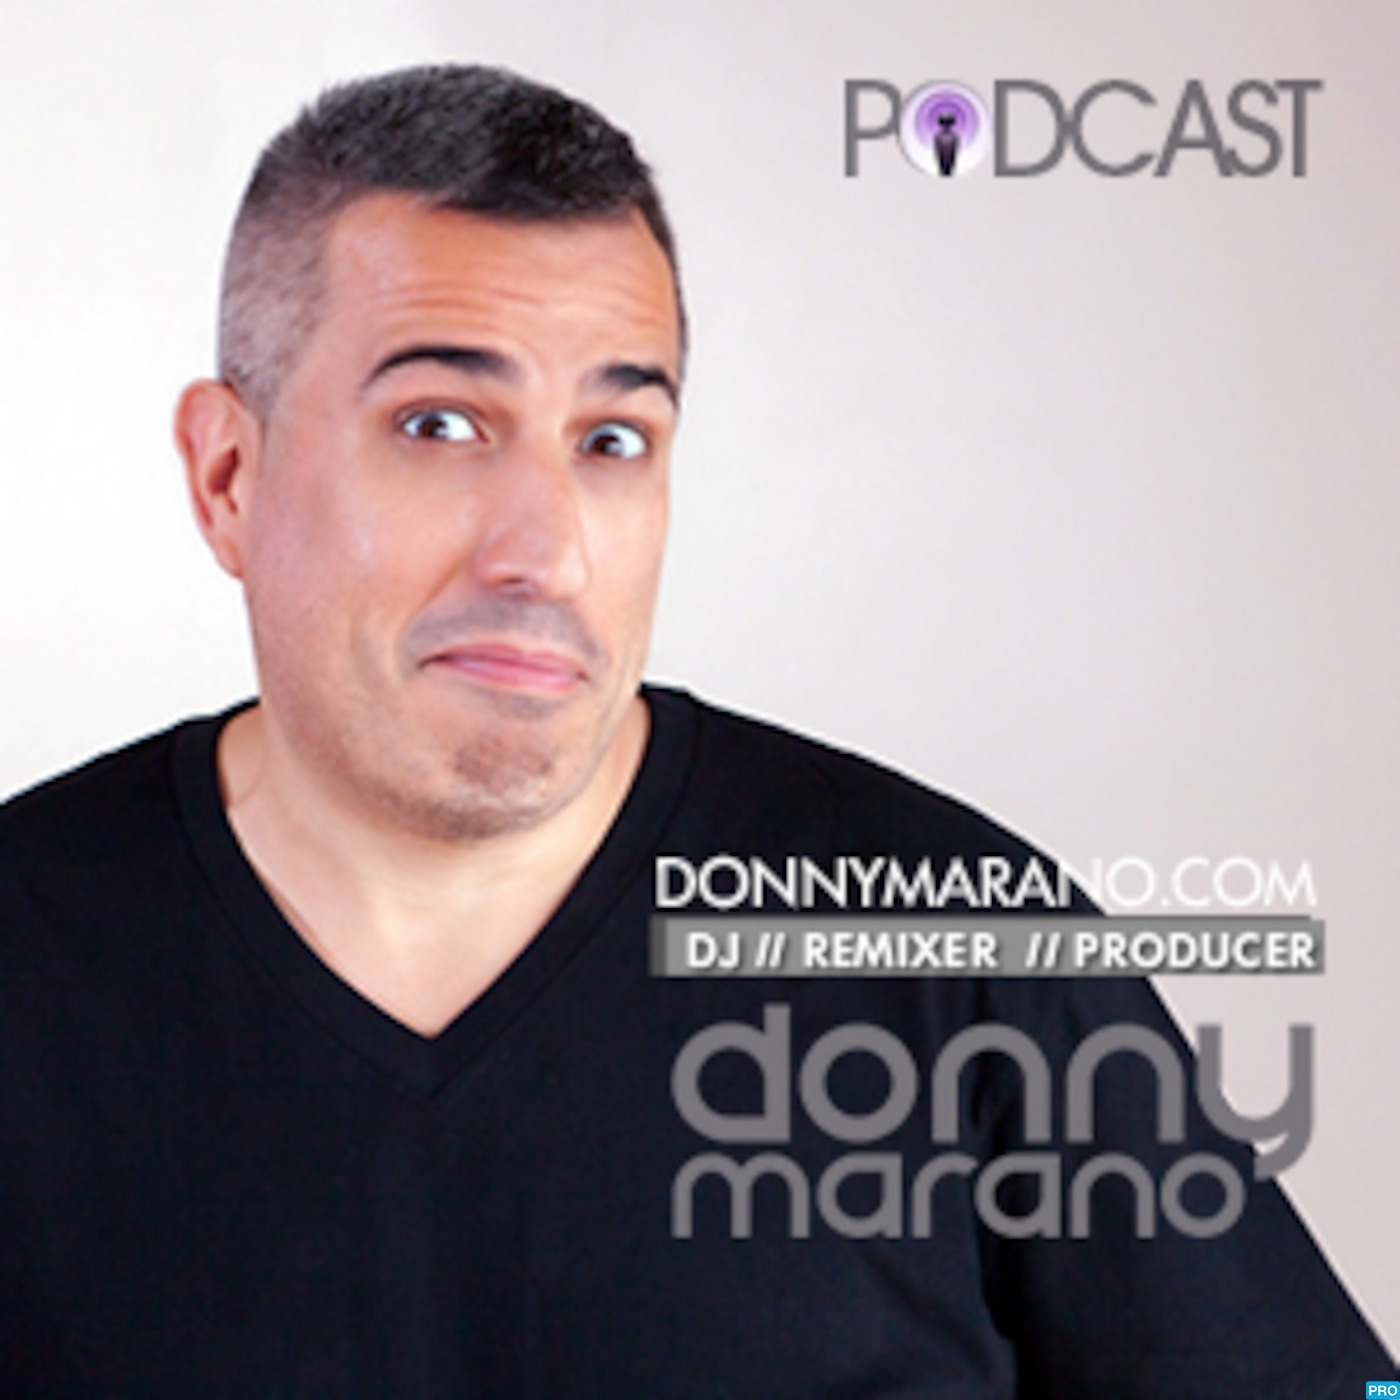 Donny Marano's Podcast